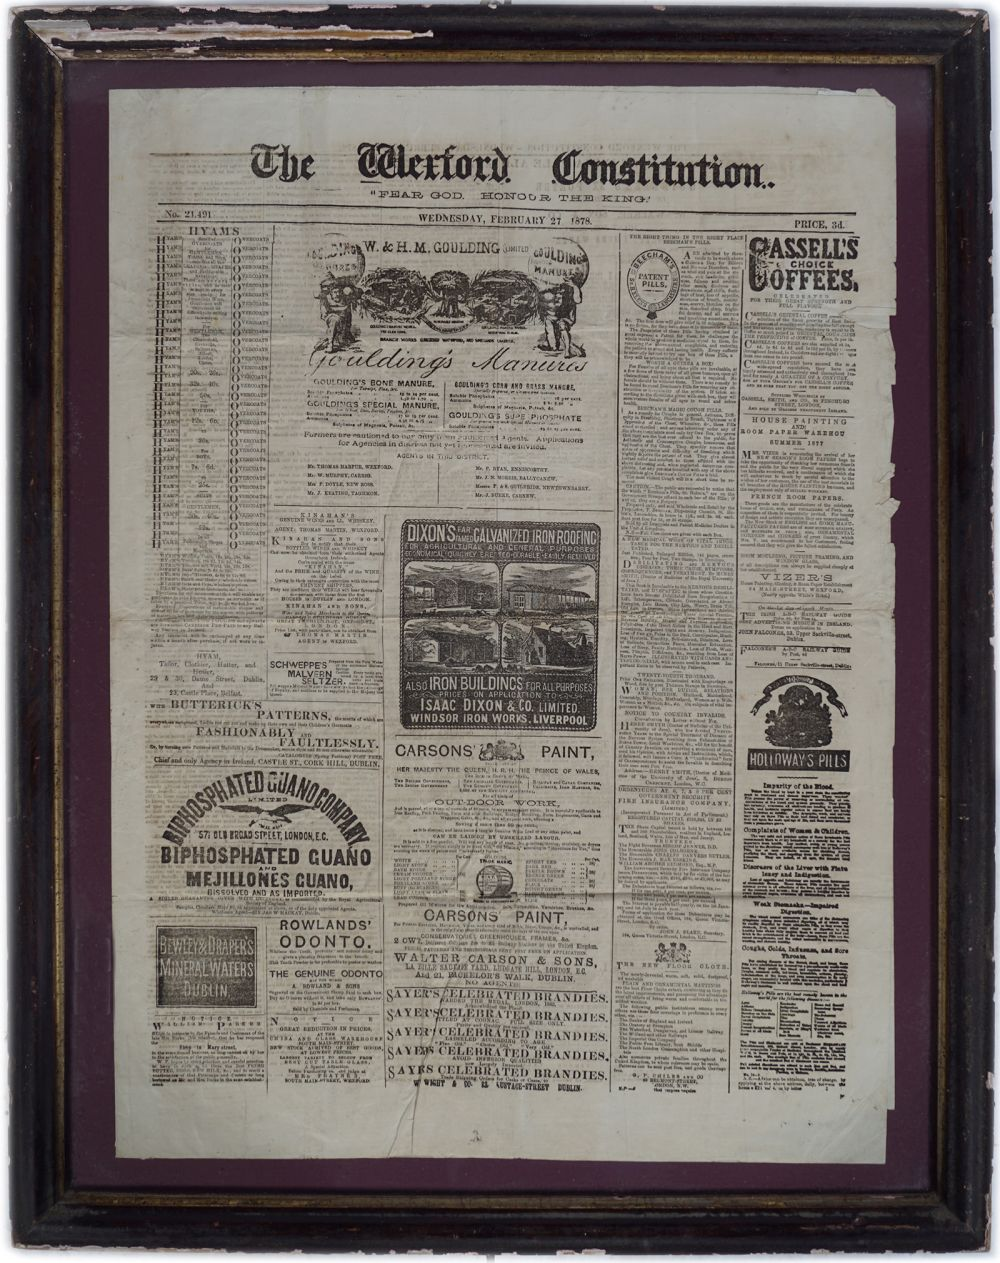 WEXFORD CONSTITUTION VINTAGE POSTER